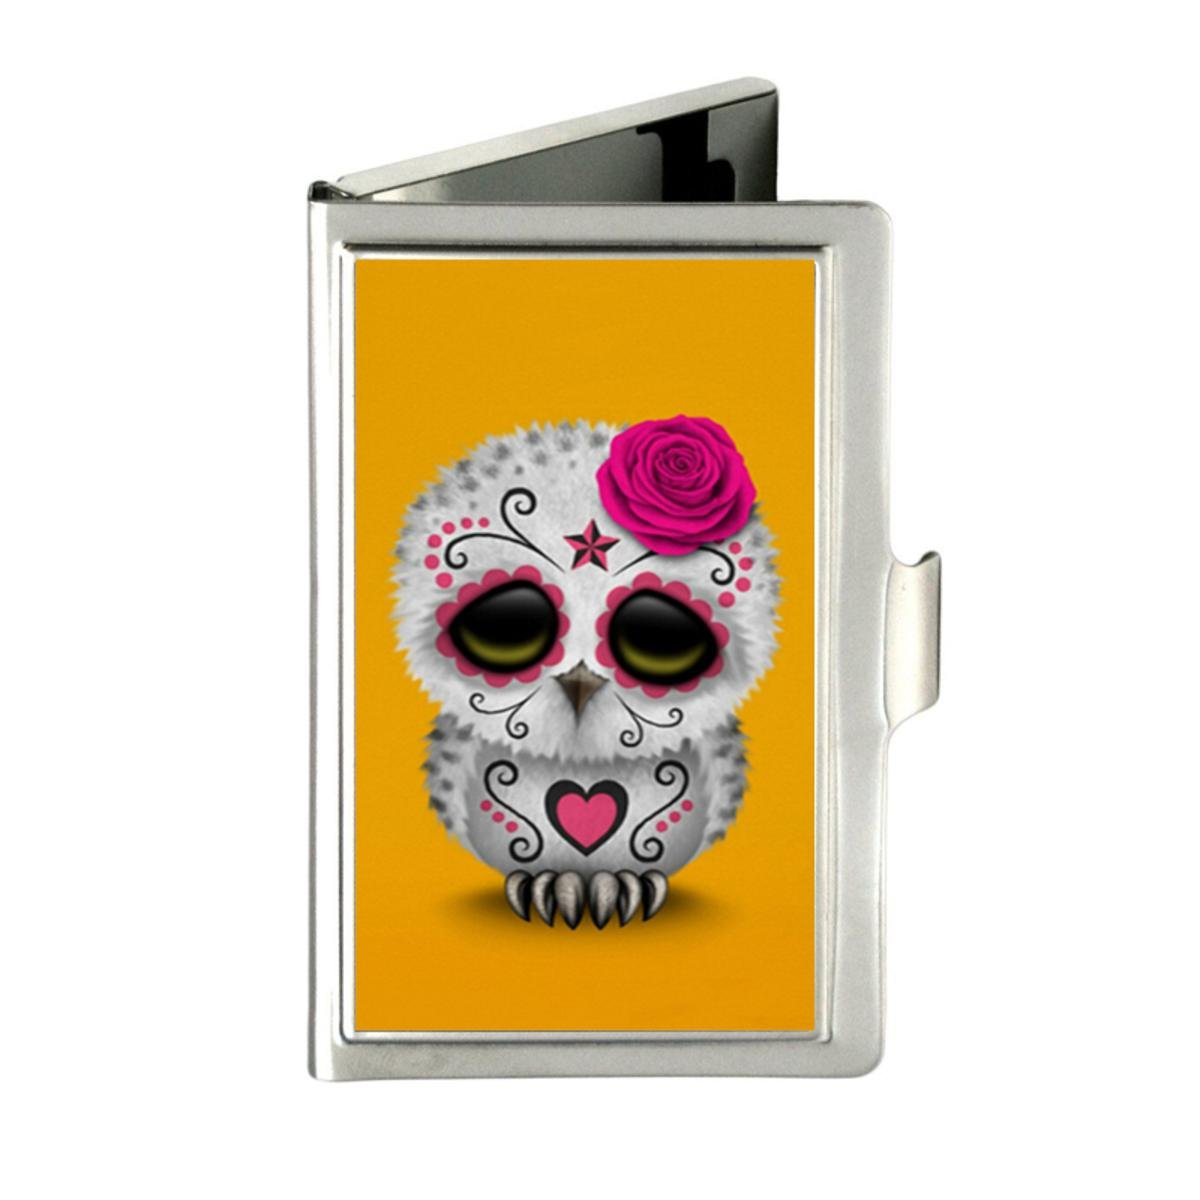 Udoosun Cute Day Of The Dead Sugar Skull Owl Yellow Custom Business Bank Name Card Case Holder Box Pocket Credit Card ID Wallet